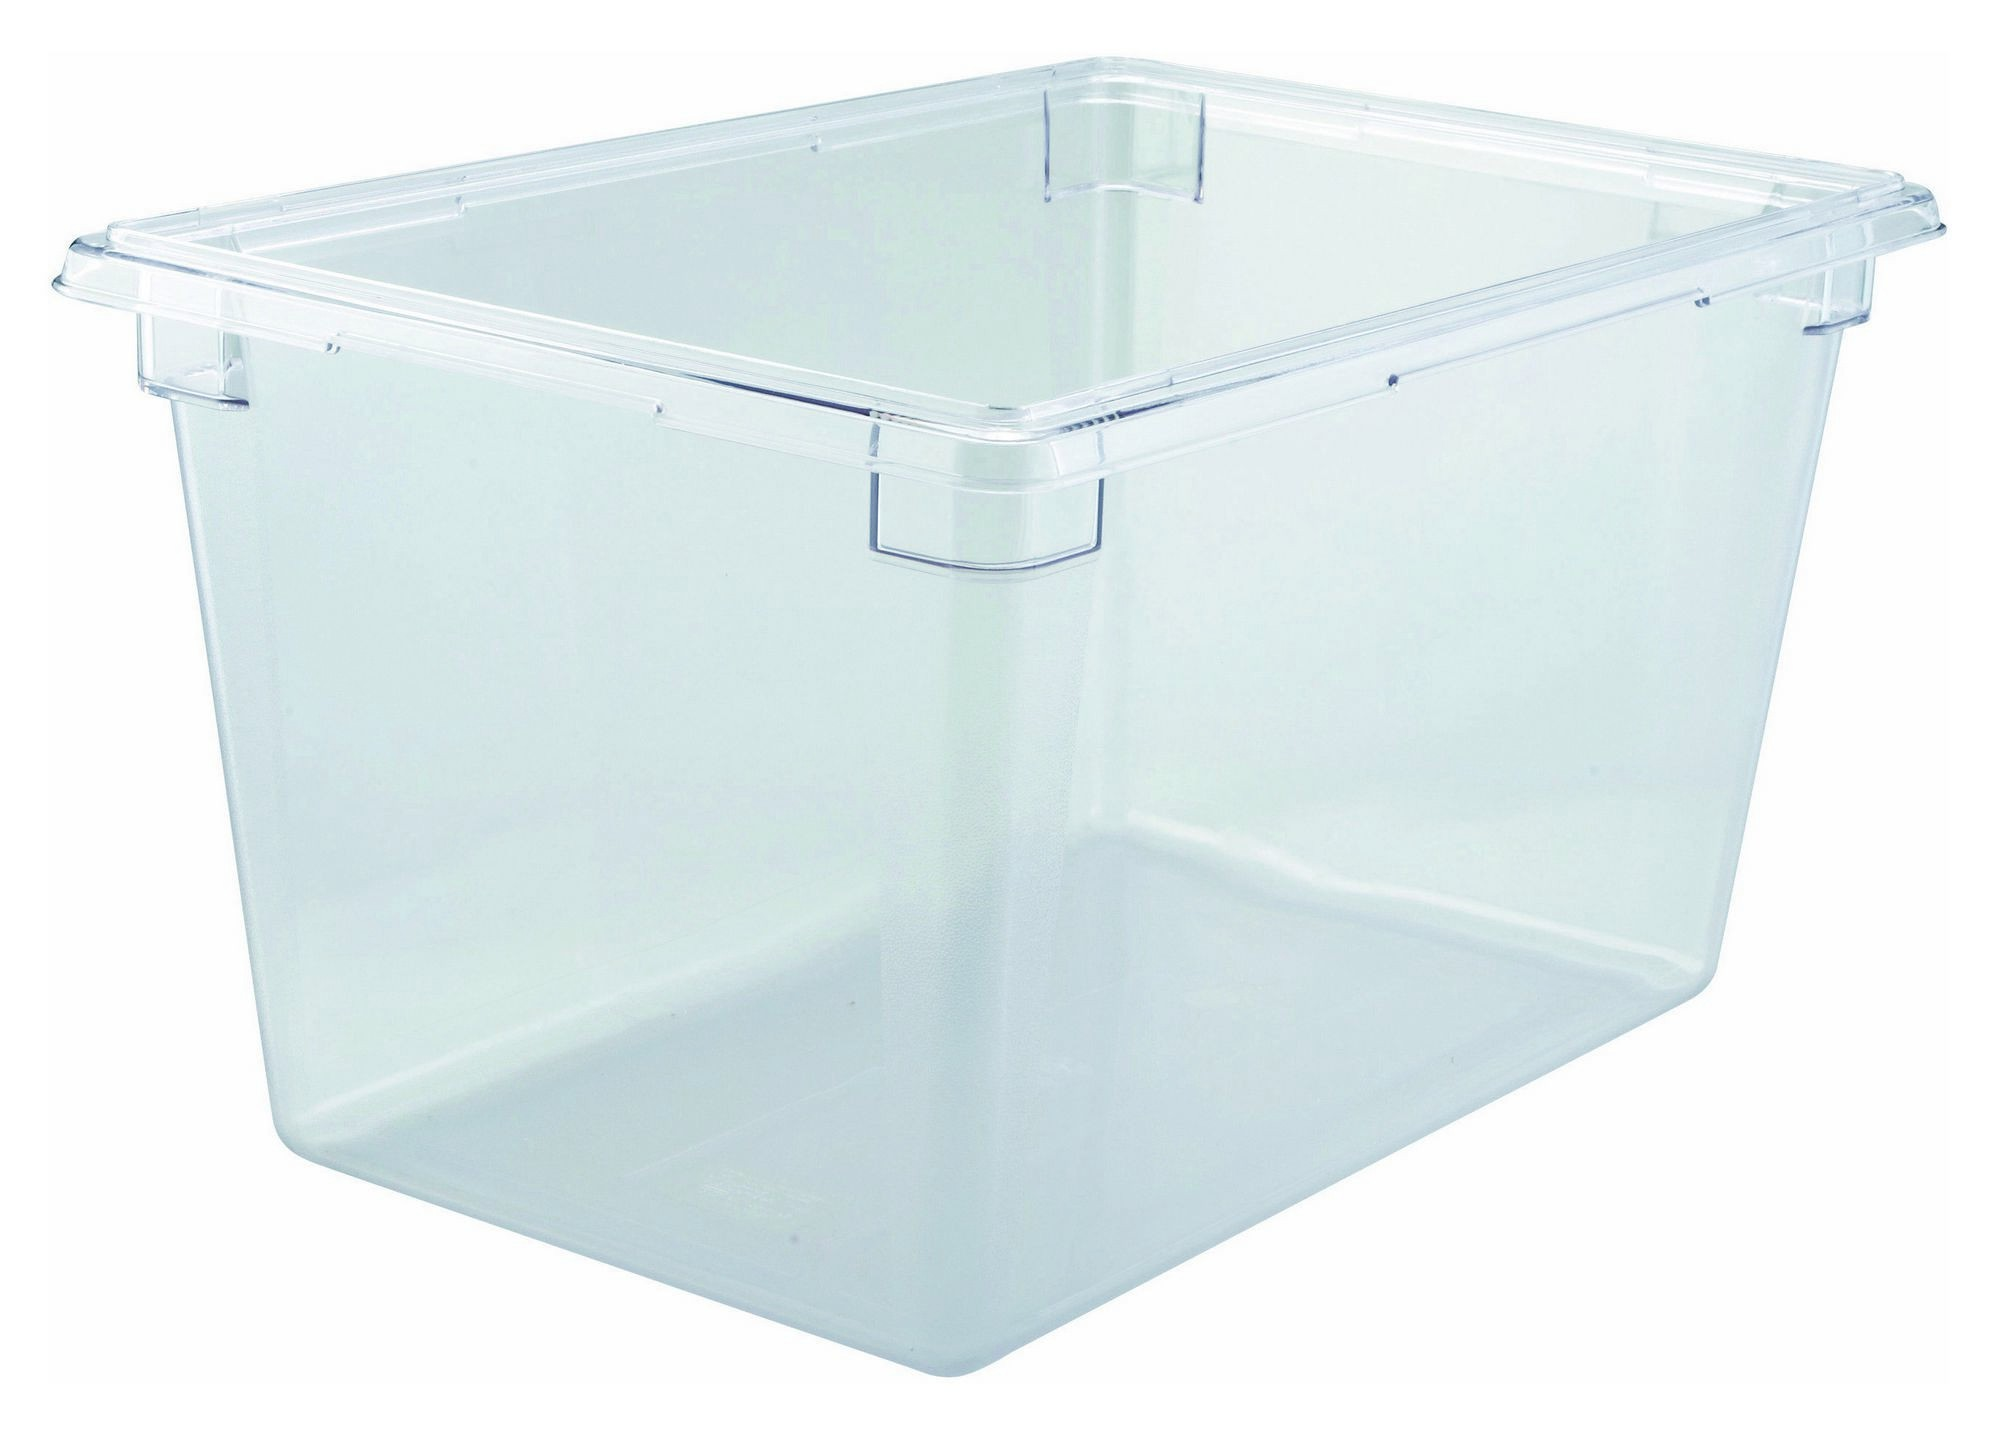 "Winco PFSF-15 Polycarbonate Food Storage Box, 18"" x 26"" x 15"""